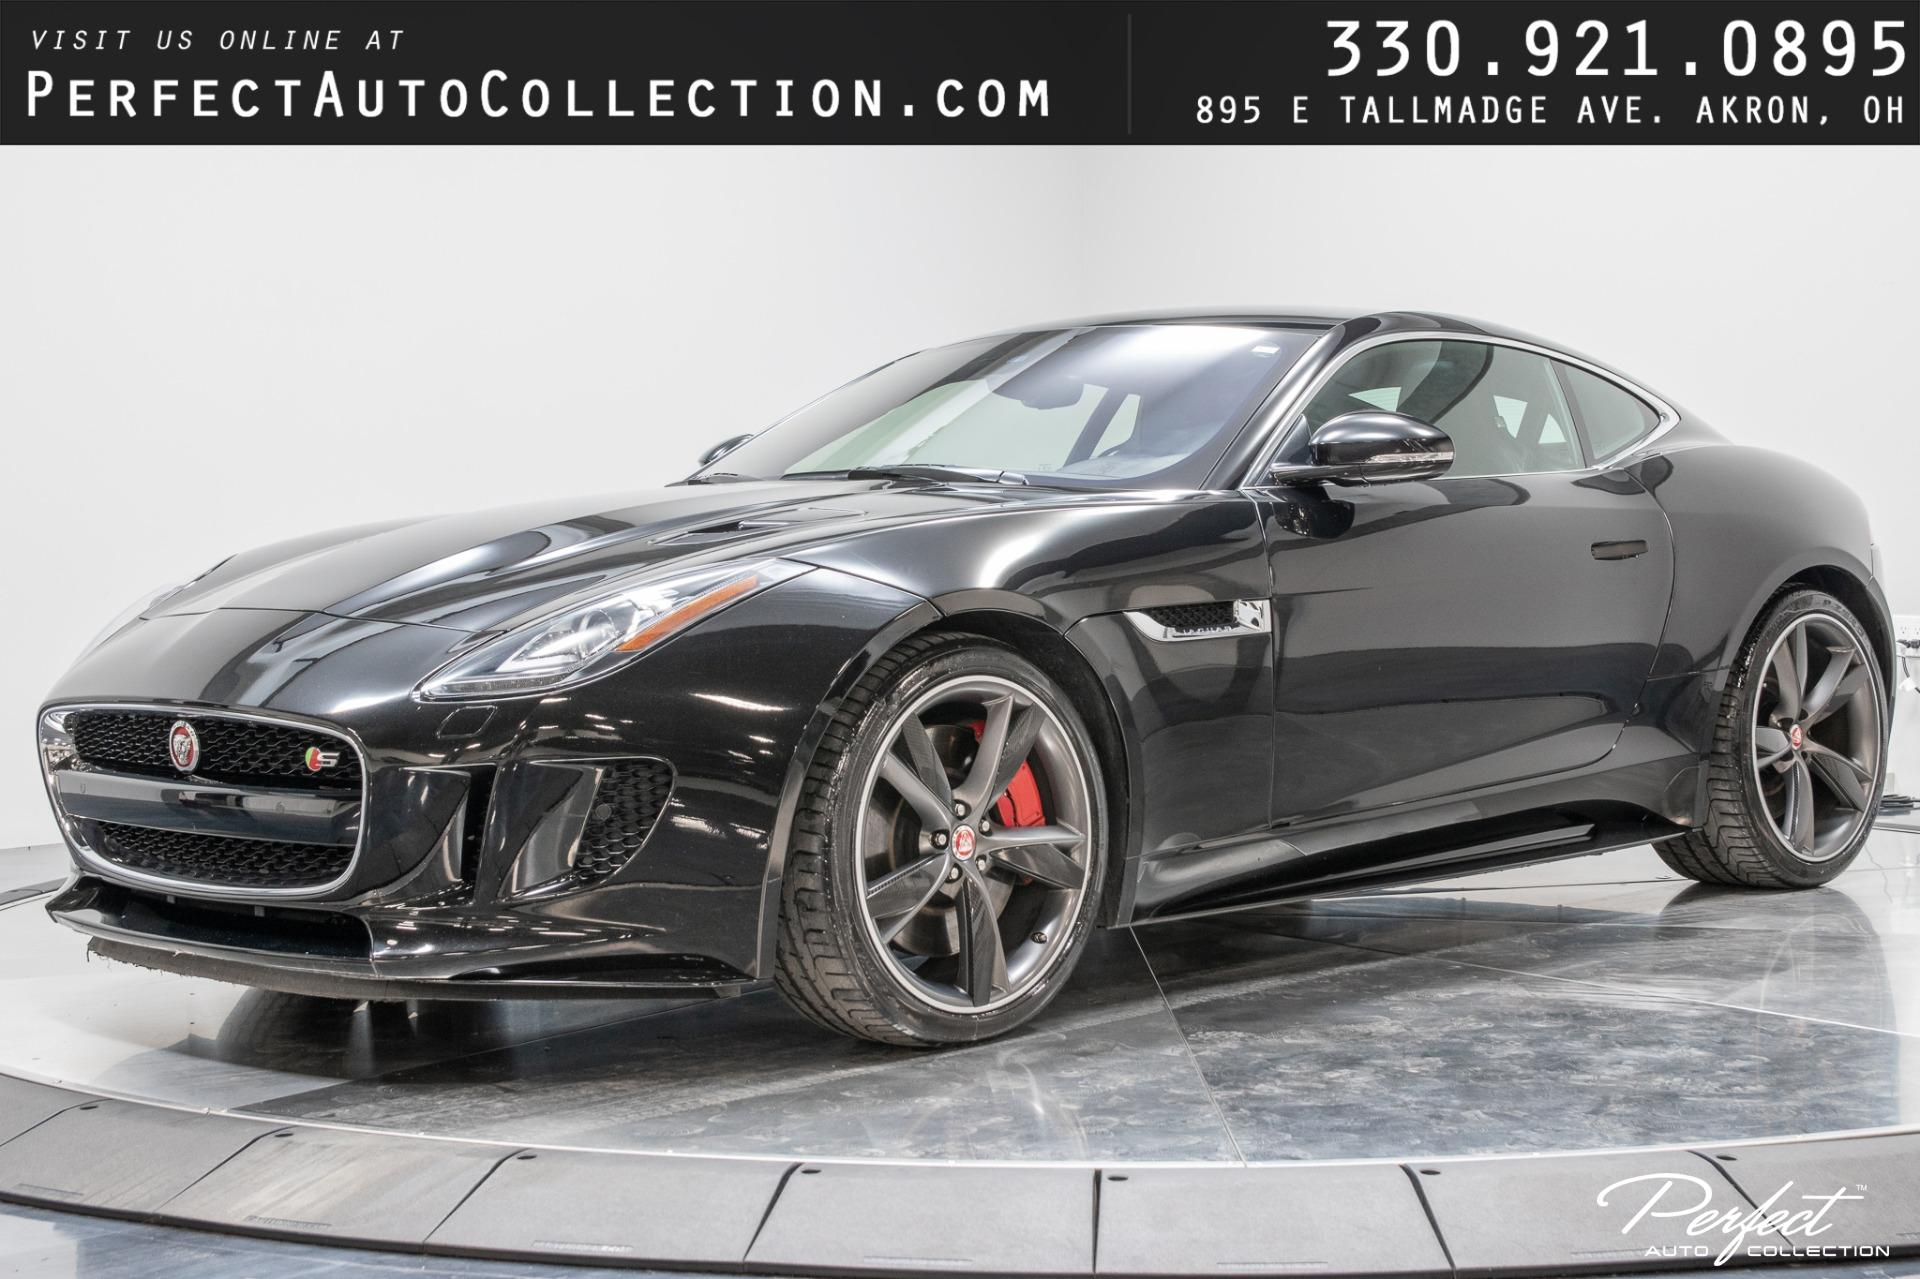 Used 2017 Jaguar F-TYPE S for sale $46,495 at Perfect Auto Collection in Akron OH 44310 1